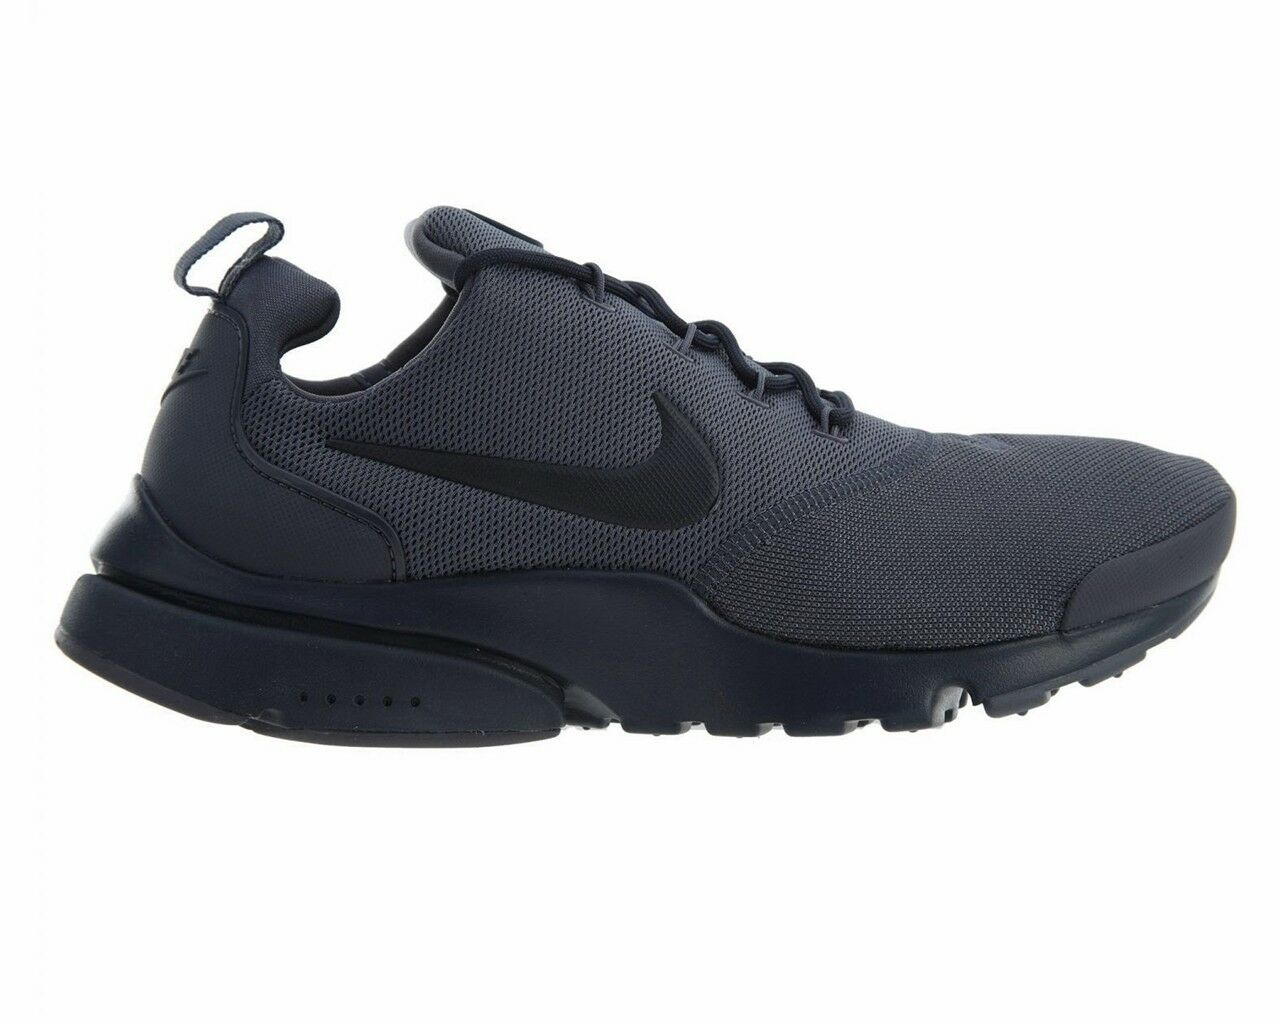 Nike PRESTO FLY 908019 007 Mens Trainers Light Carbon Grey